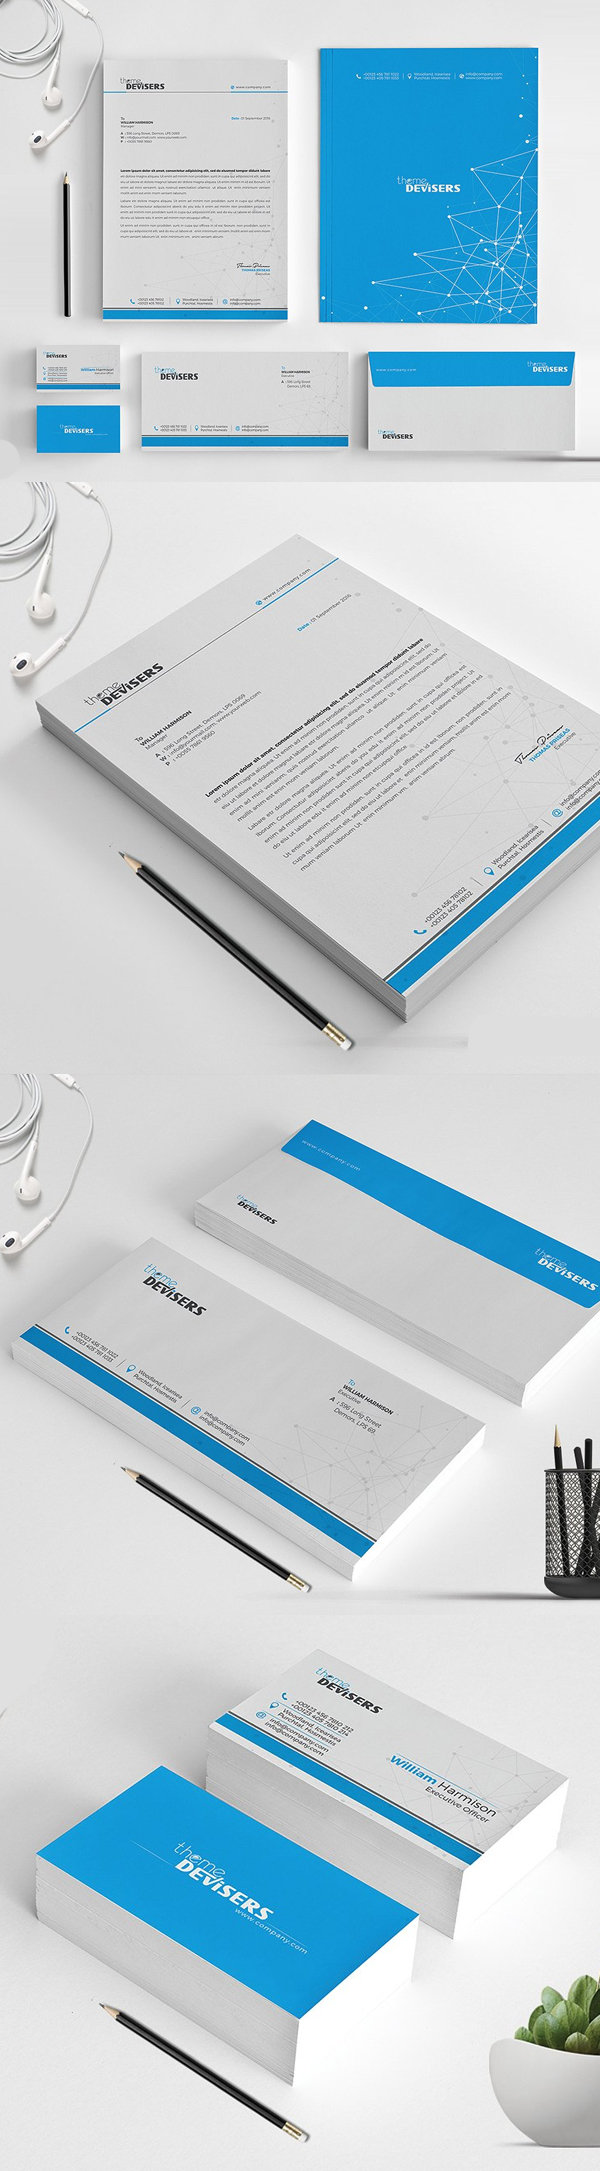 Modern Business Branding / Stationery Templates Design - 16